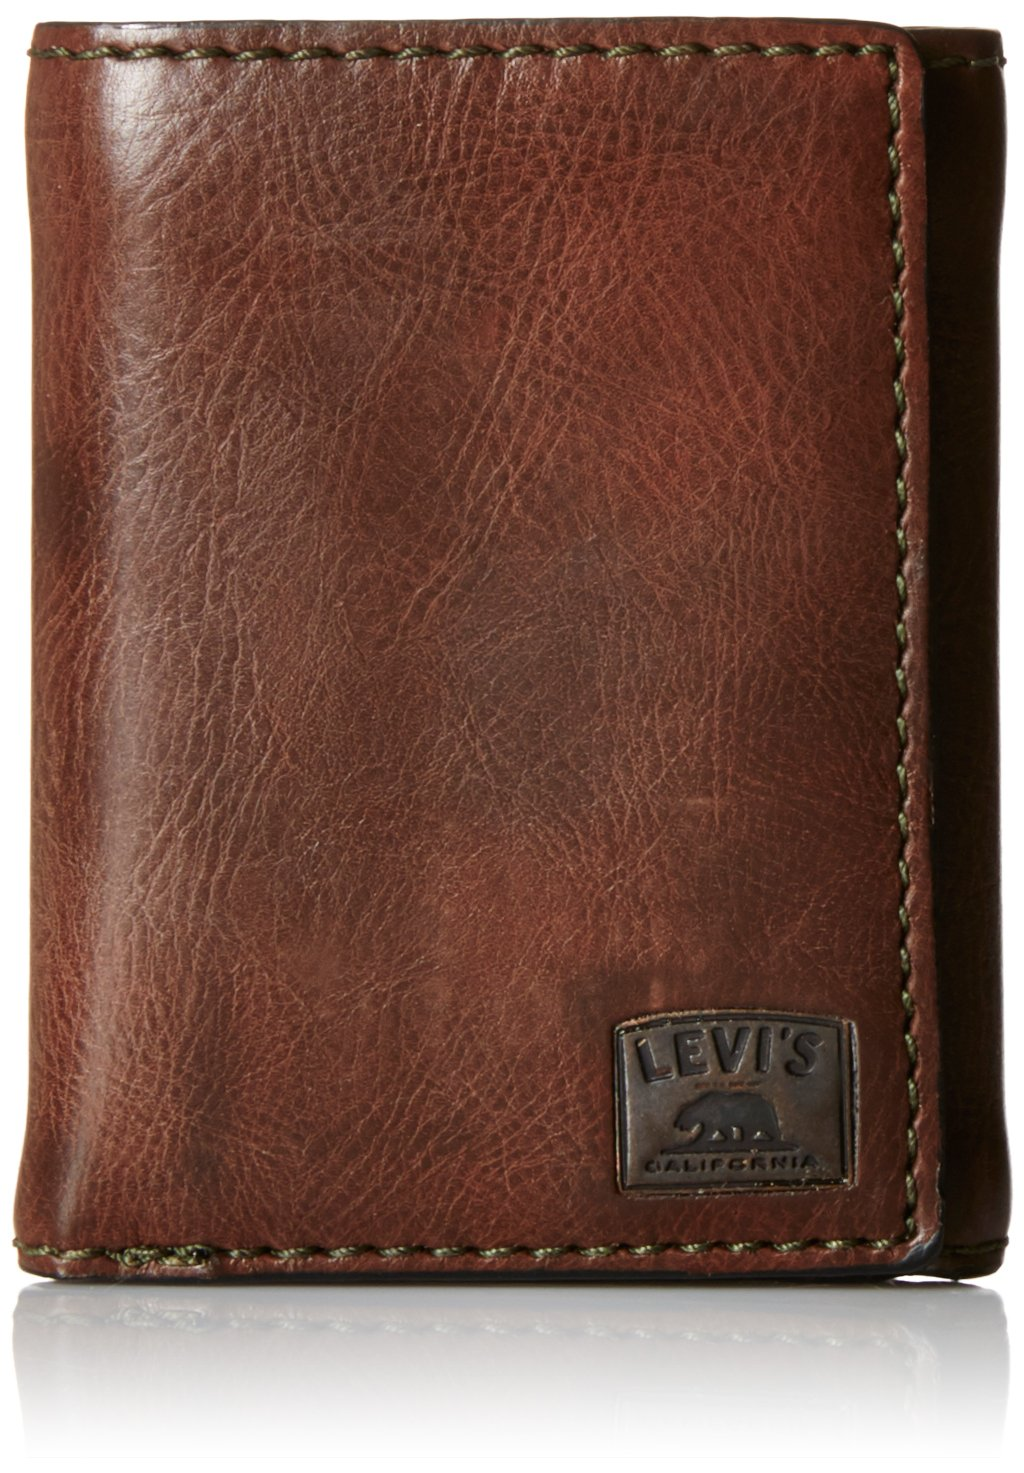 Levi's Men's Trifold Wallet - Sleek and Slim Includes ID Window and Credit Card Holder,Brown Stitch by Levi's